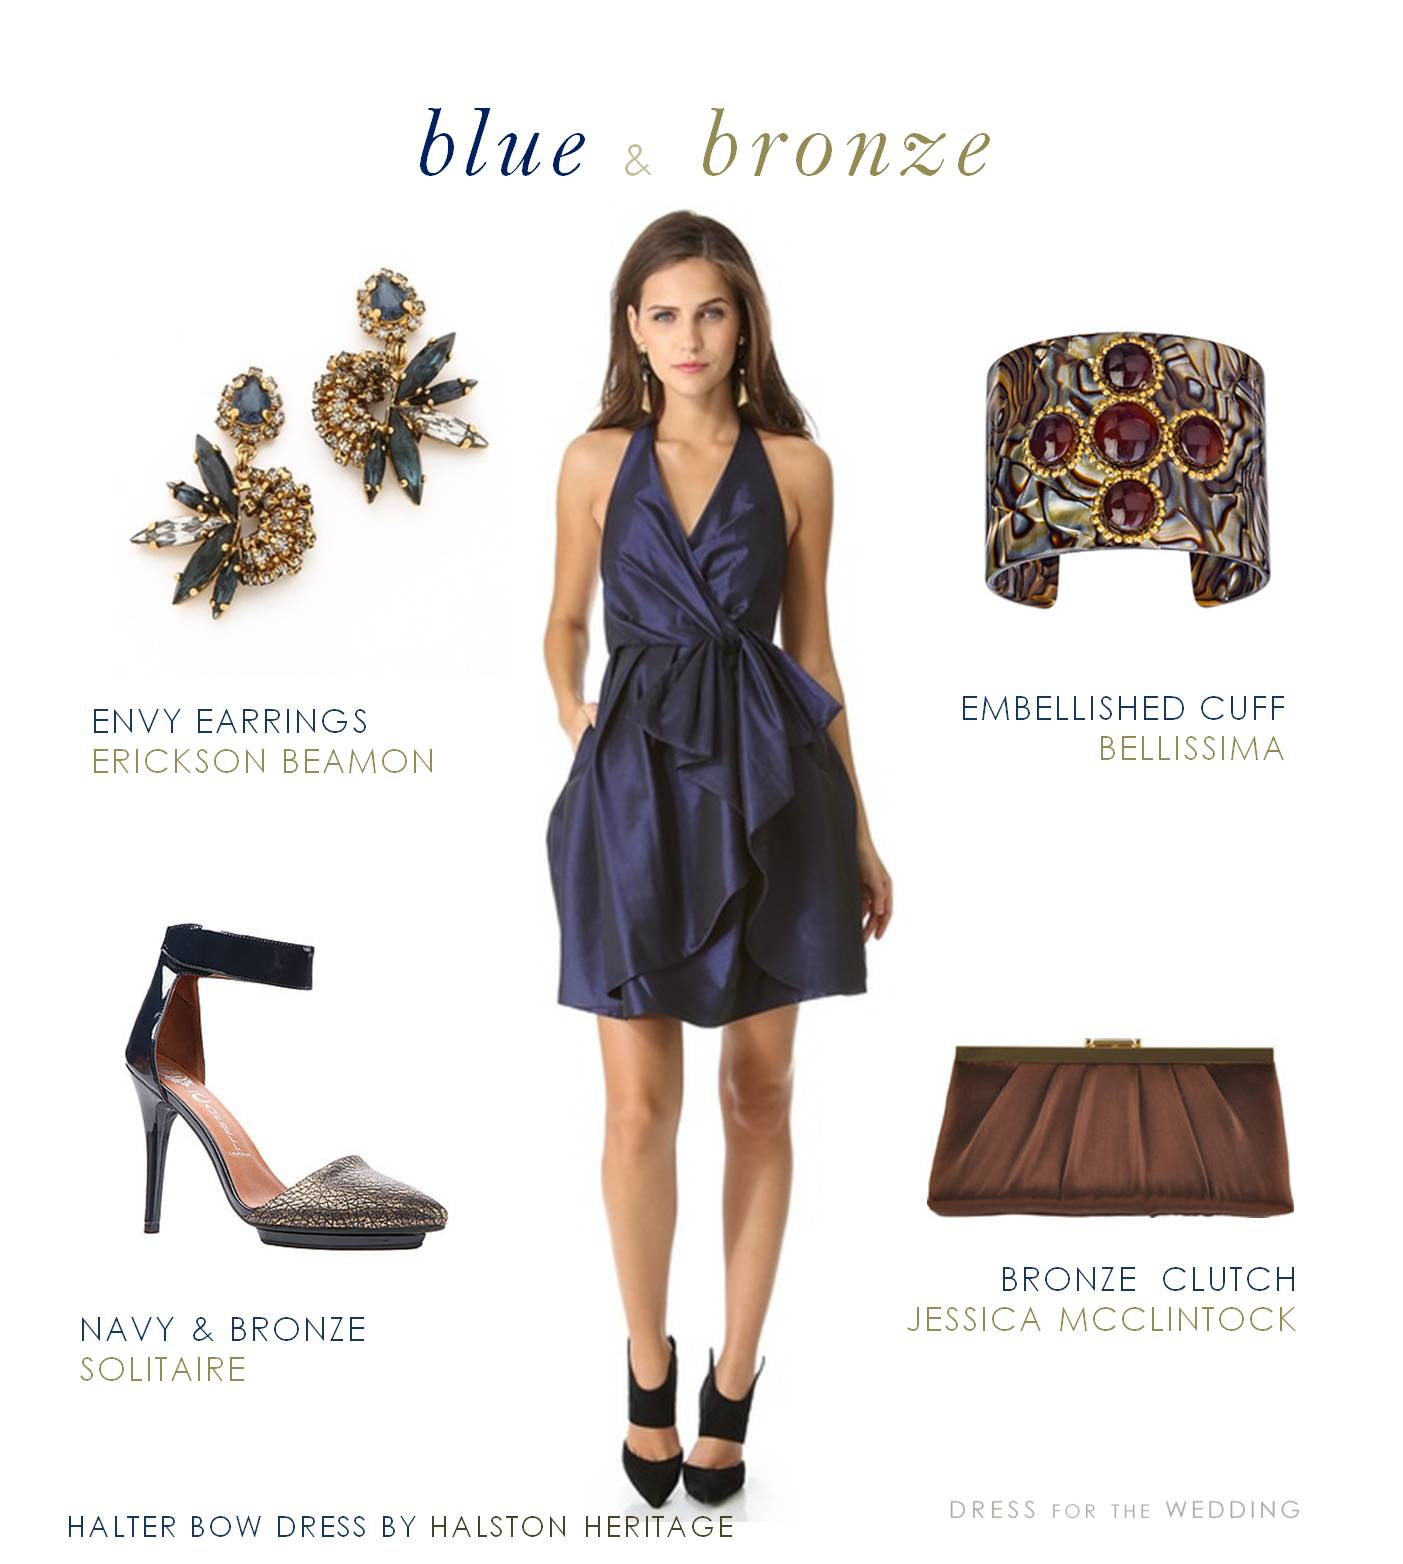 navy blue and bronze dress for a wedding